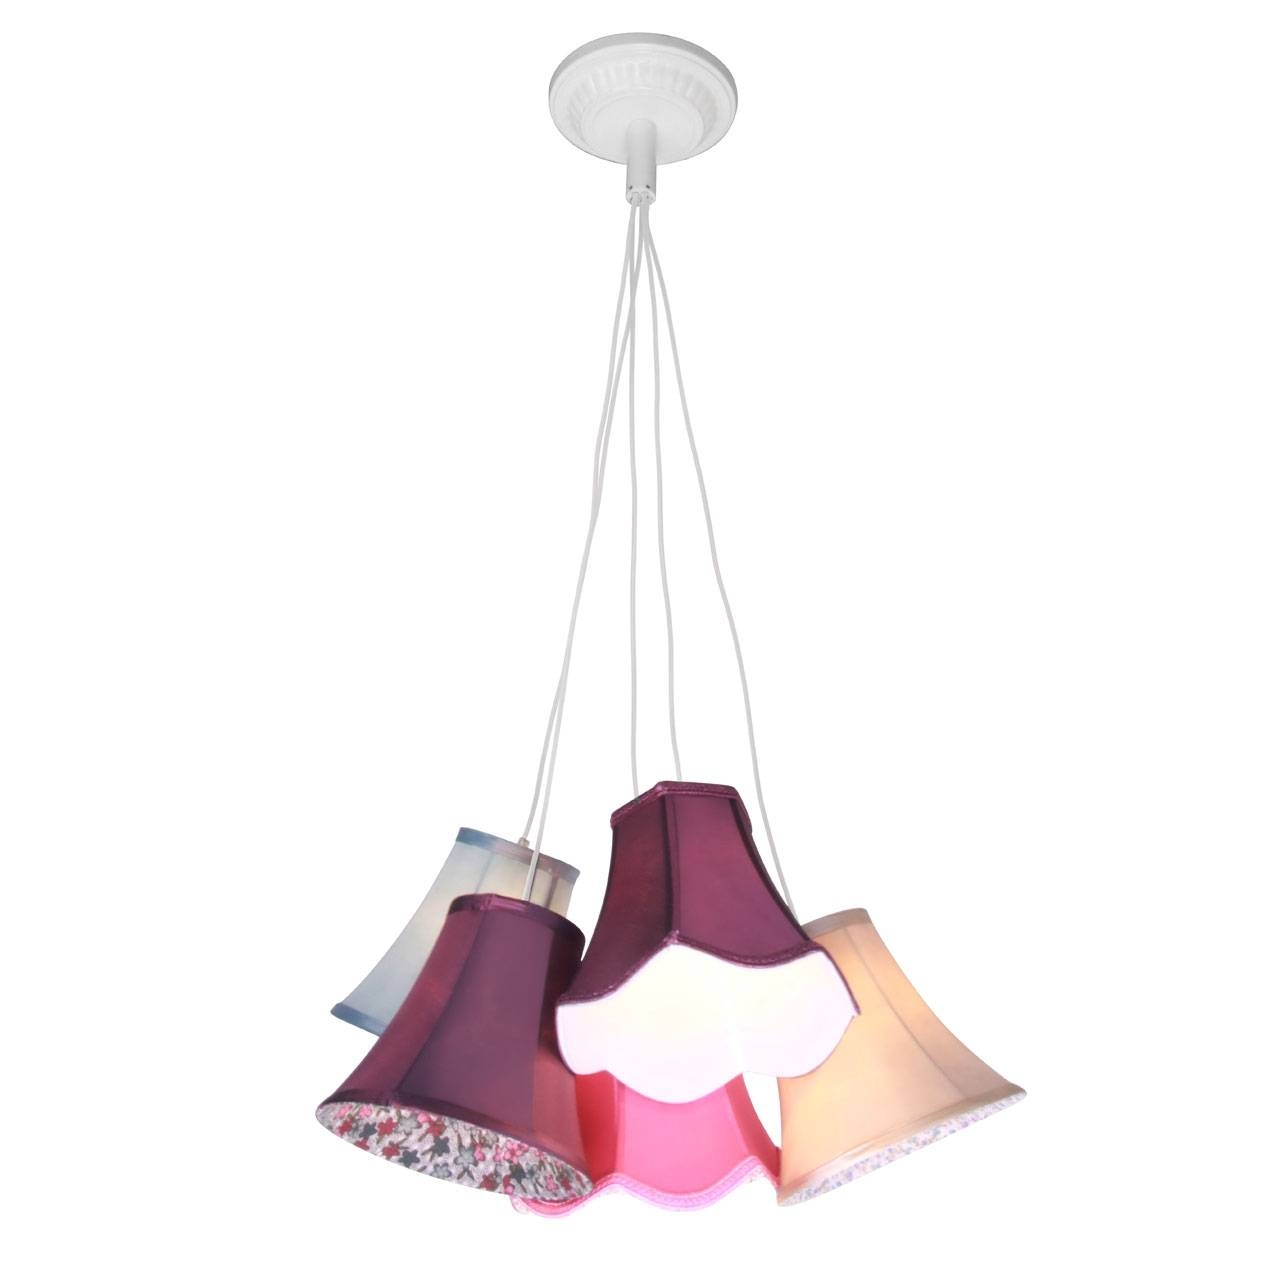 Pendant Light Tiered 9 And 5 Multi Coloured Shades Ceiling Hanging intended for Multi Coloured Pendant Lights (Image 10 of 15)